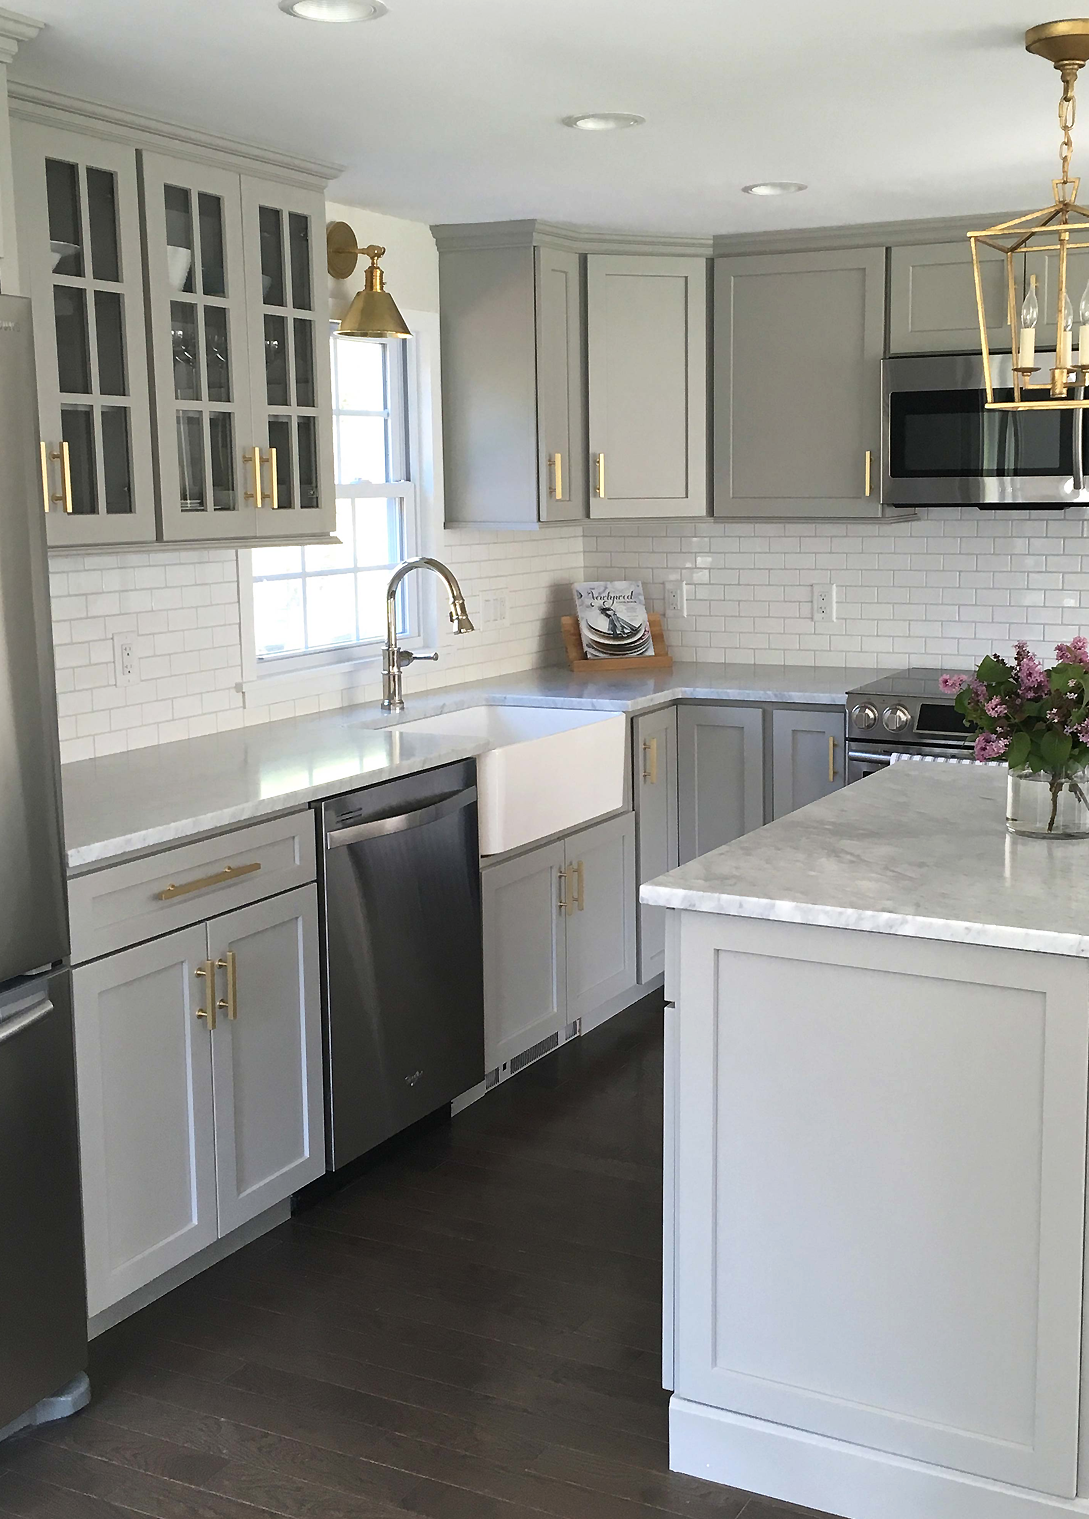 We Love This Stylish Gray Kitchen With Goldhardware Kitchen Remodel Small Home Kitchens Kitchen Renovation